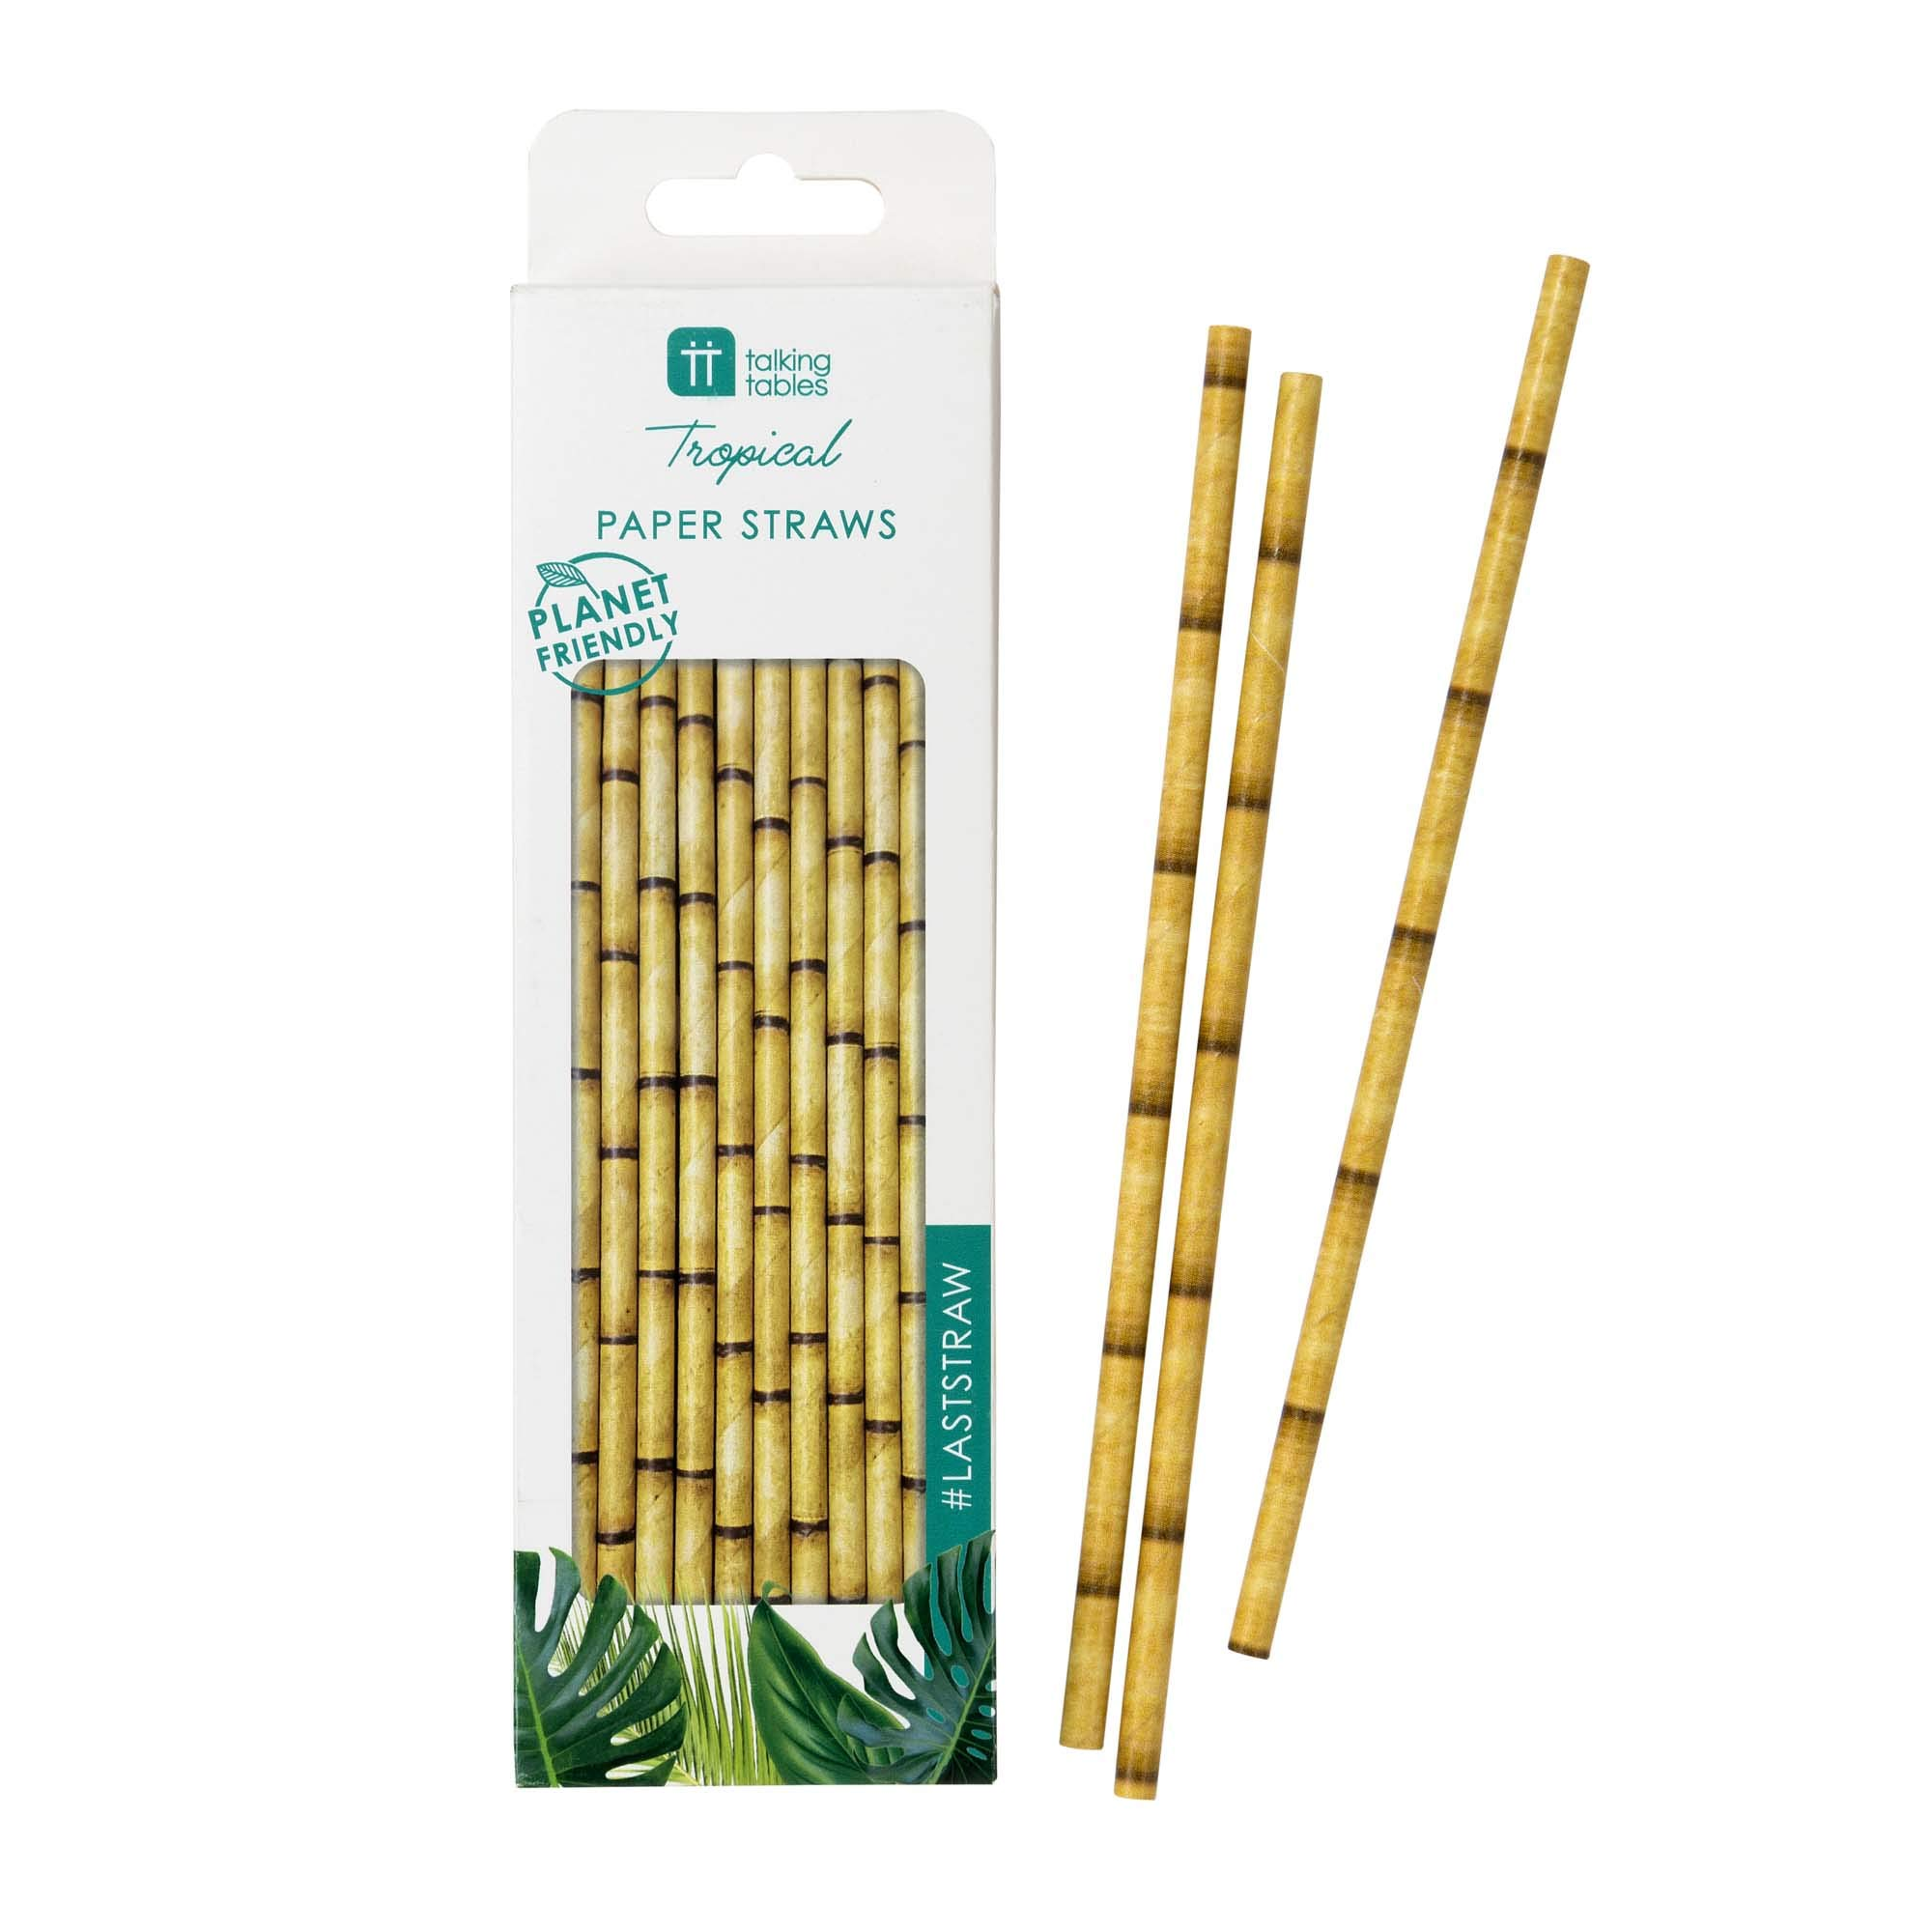 Talking Tables FST6-STRAW Tropical Party Supplies Birthday Decorations Fiesta Bamboo Paper Straws, Pack of 30, Biodegradable Eco-Friendly